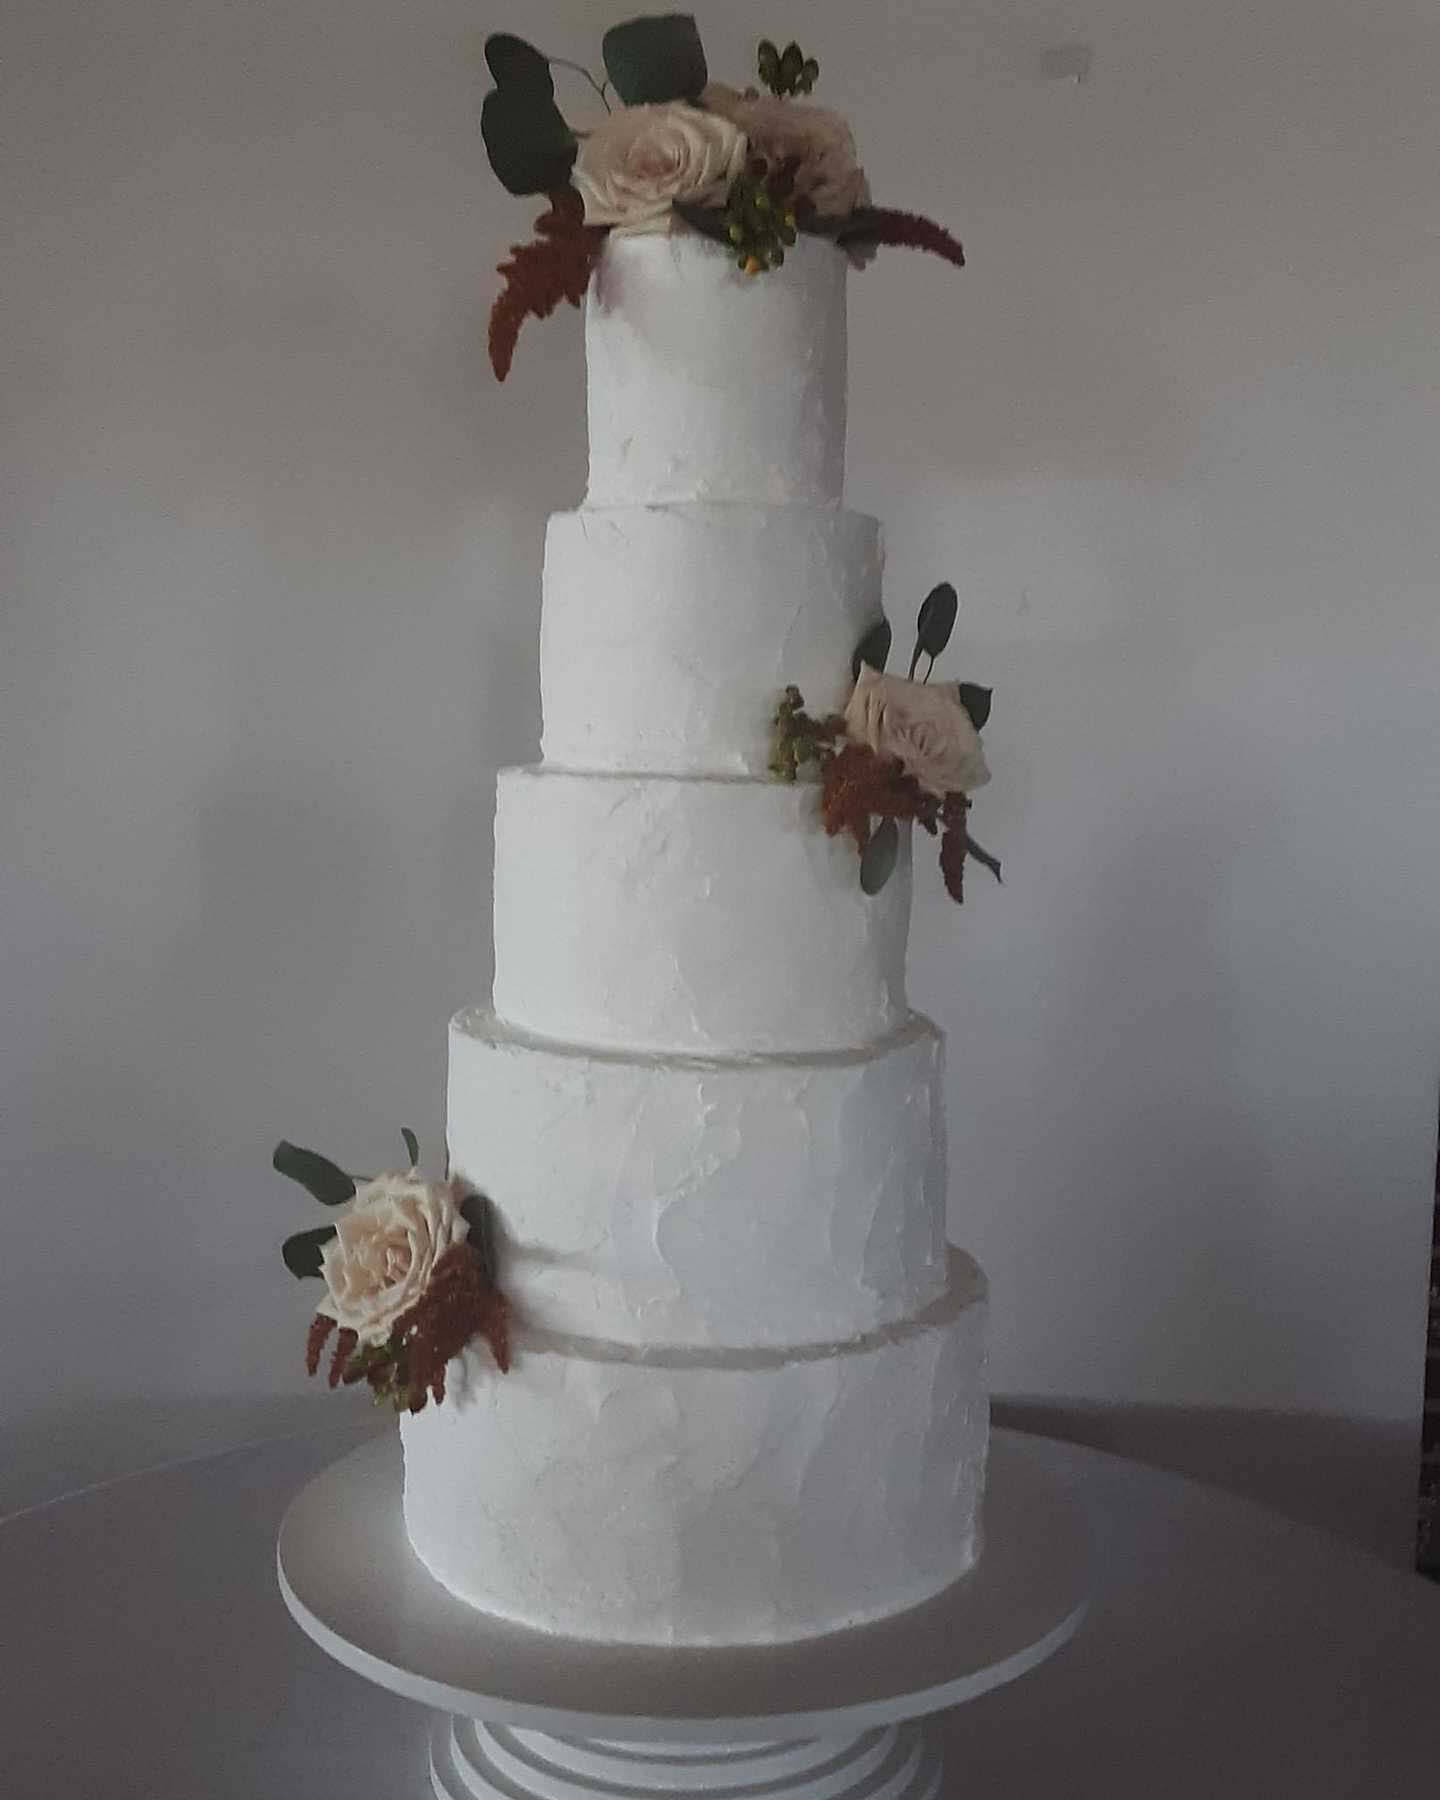 Buttercream cake, a wedding trend in 2020, from Cakes by Mom and Me